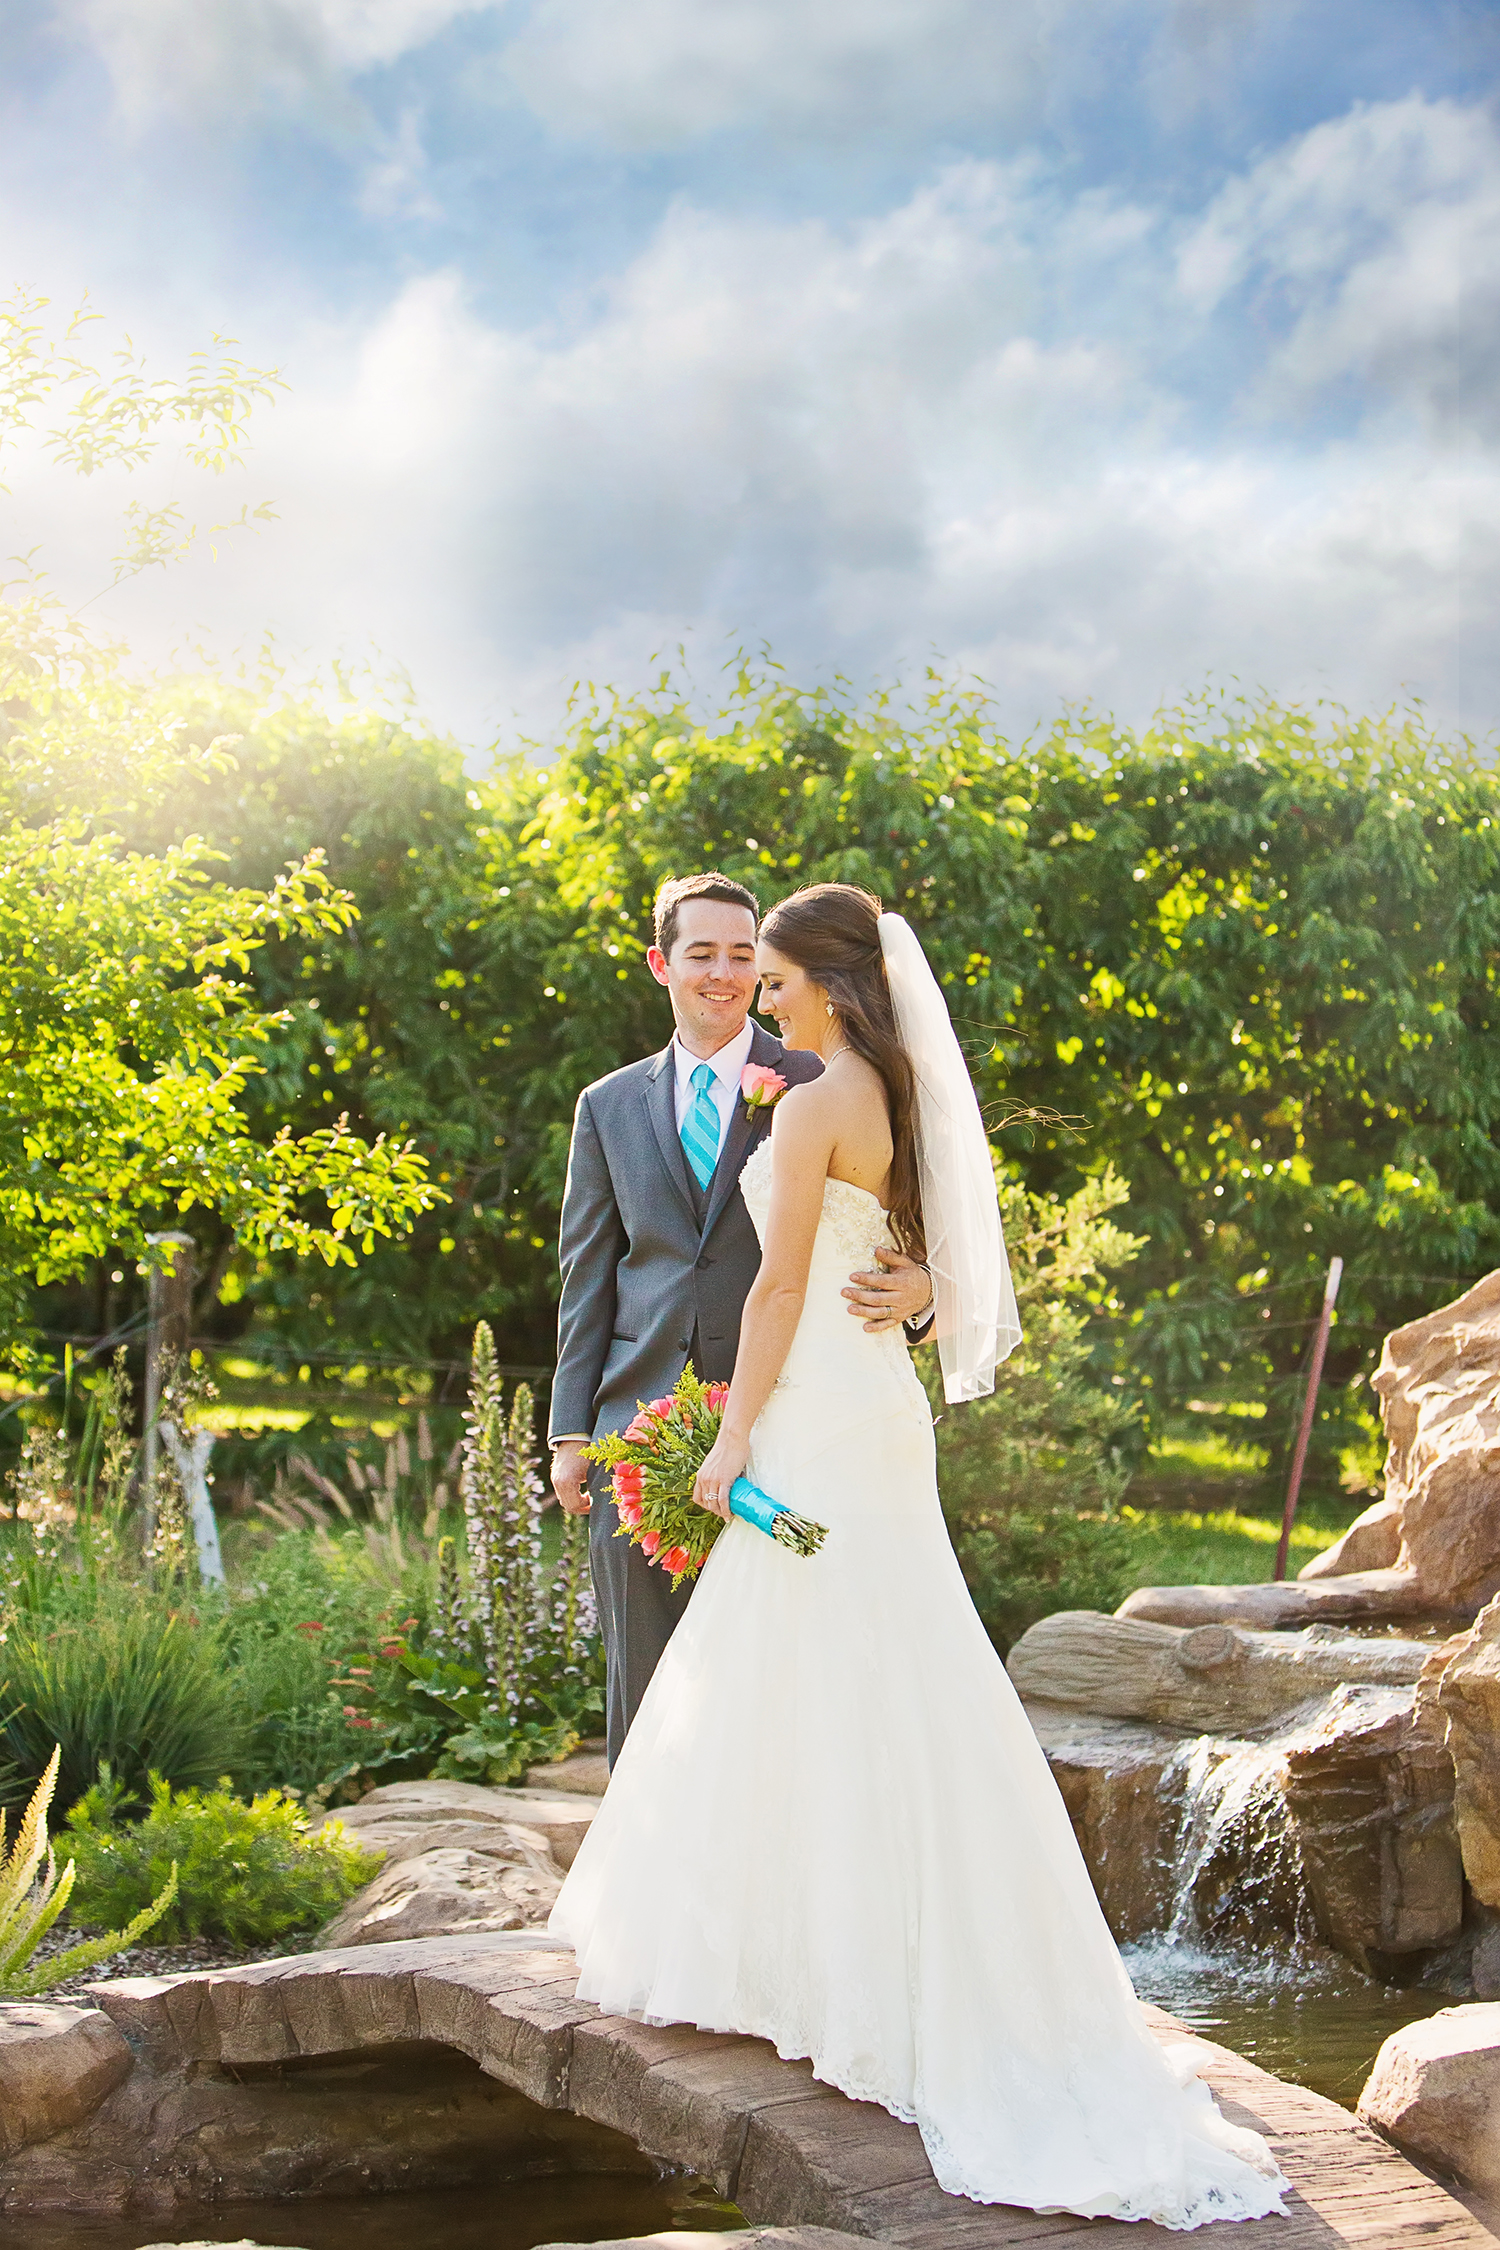 Dena_Rooney_Wedding_Photographer_Shellys_Country_Garden_011.jpg